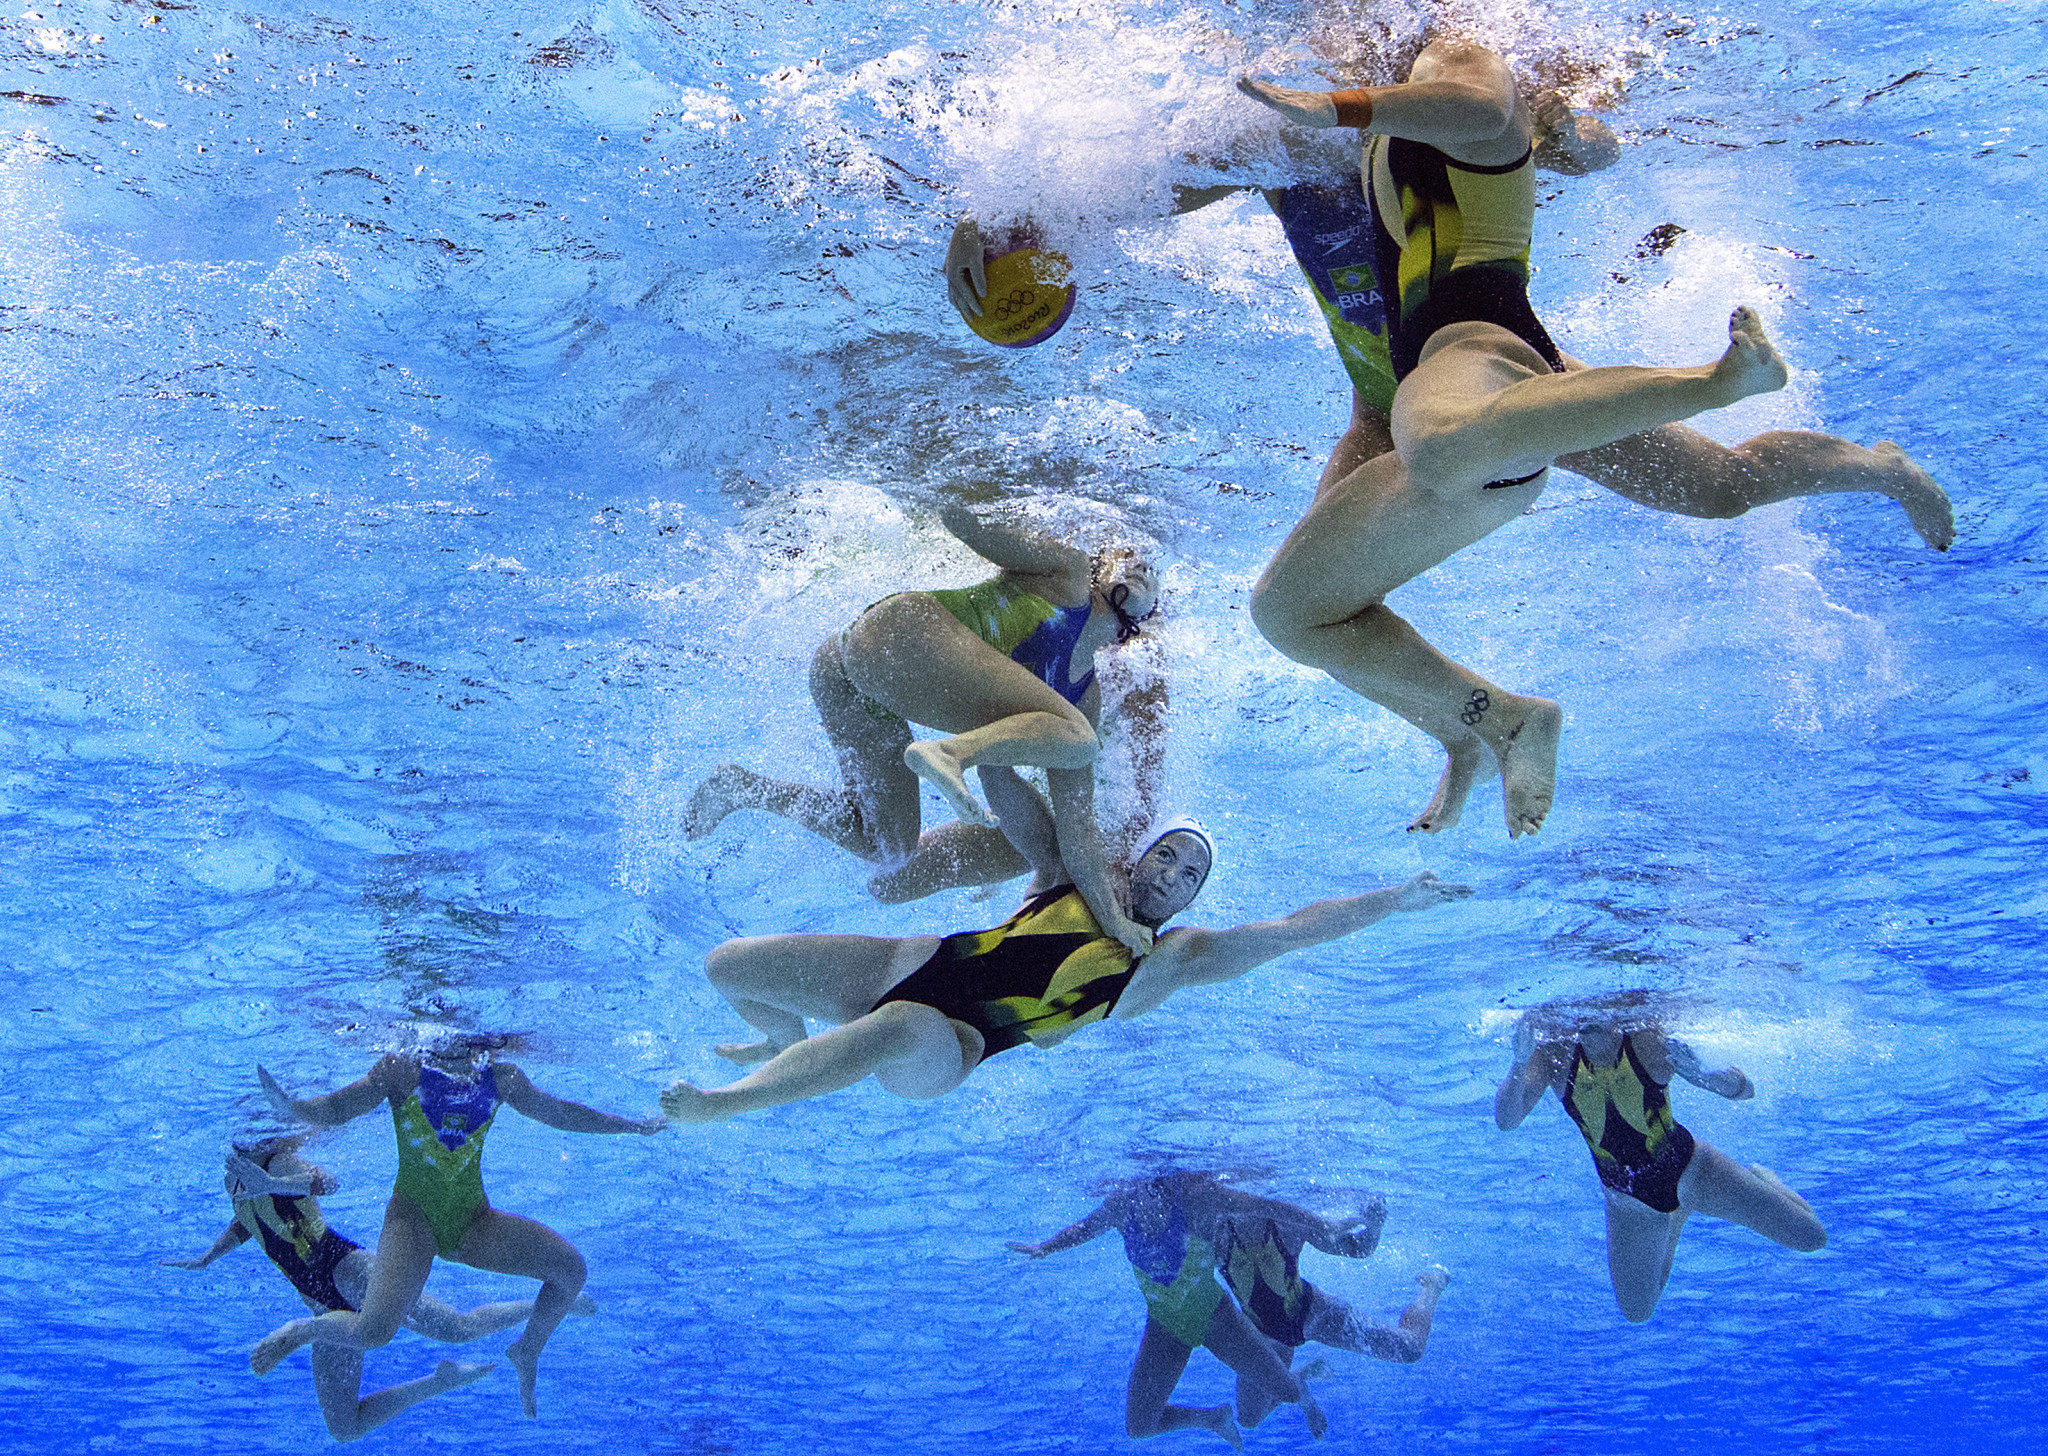 Spain end Russian hopes of winning three consecutive World Women's Junior Water Polo Championship titles